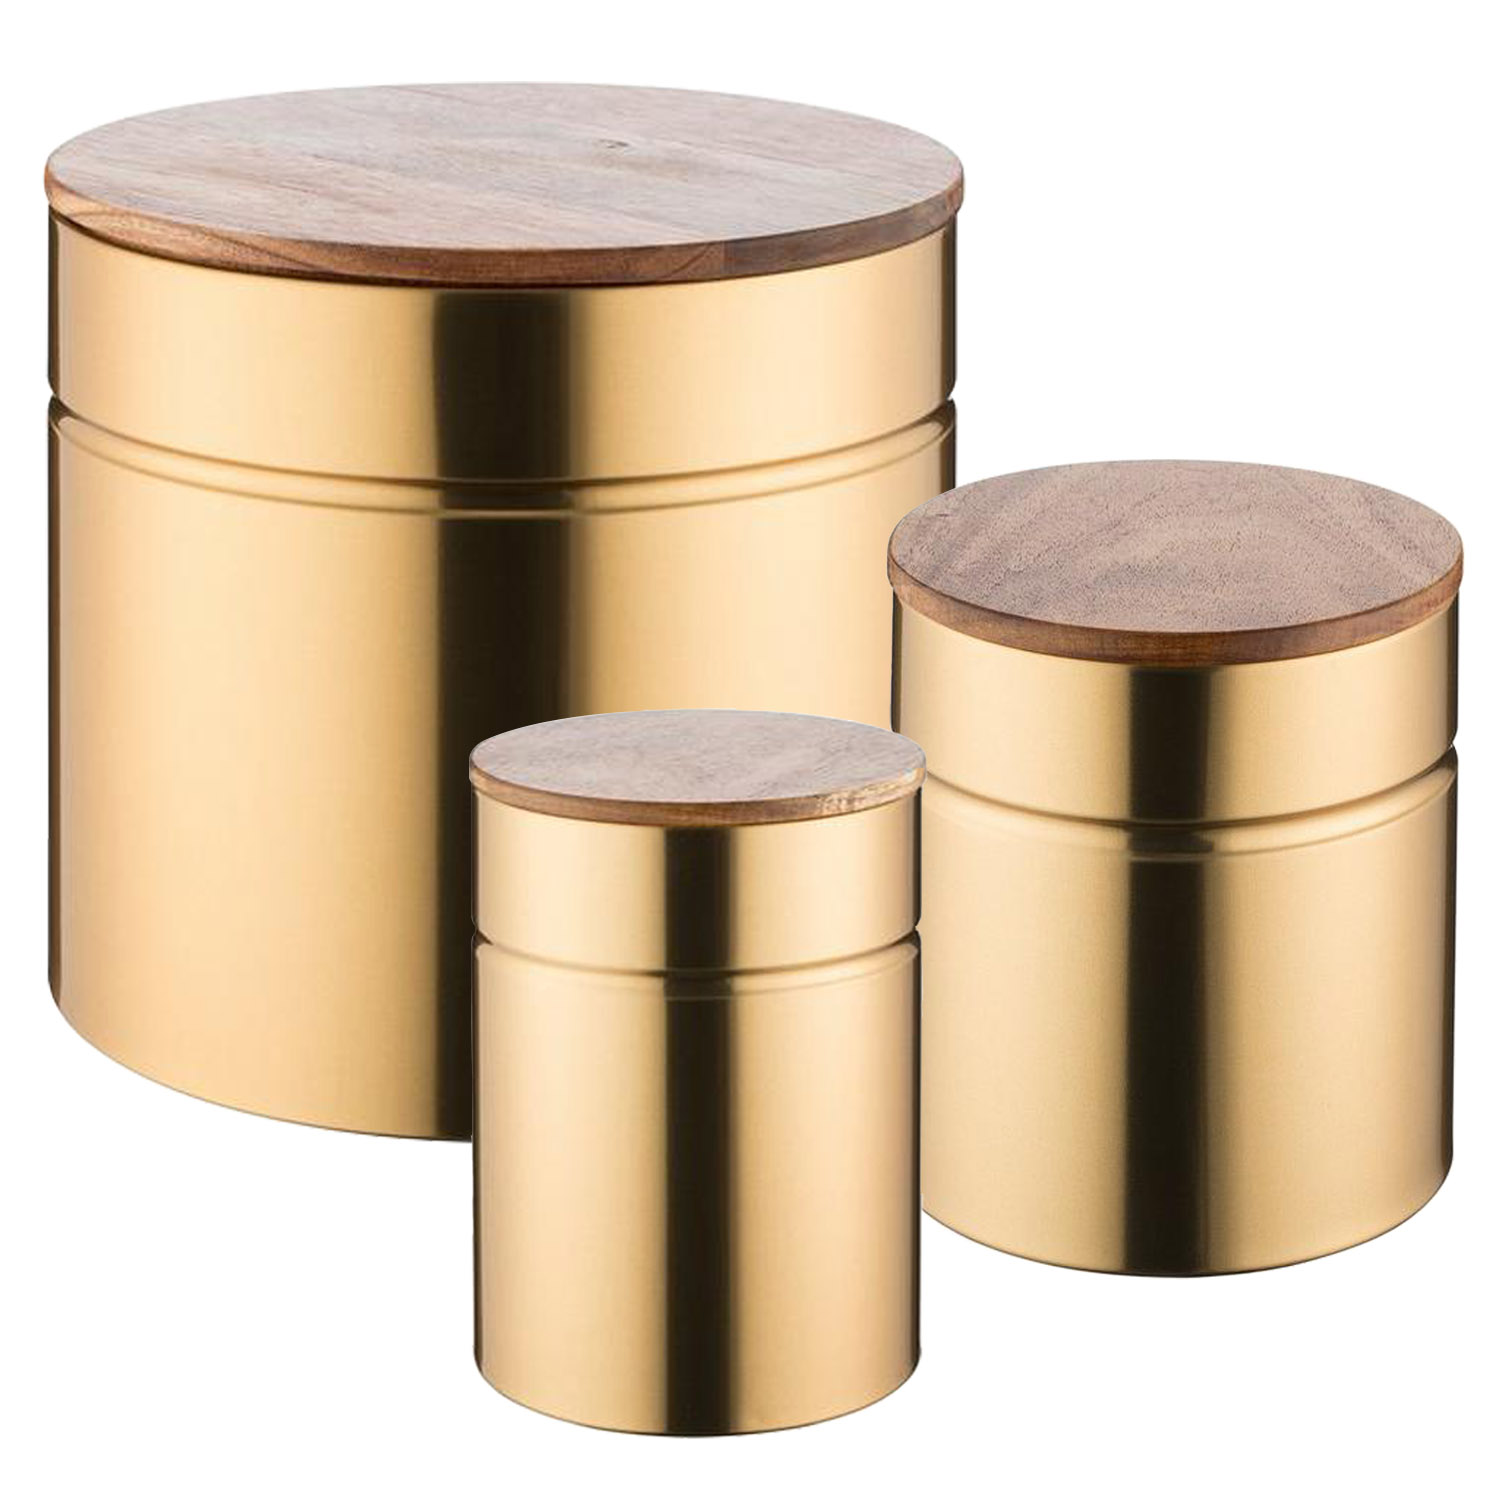 Details about modern kitchen 3 piece gold storage canisters bread bin wooden lid container set